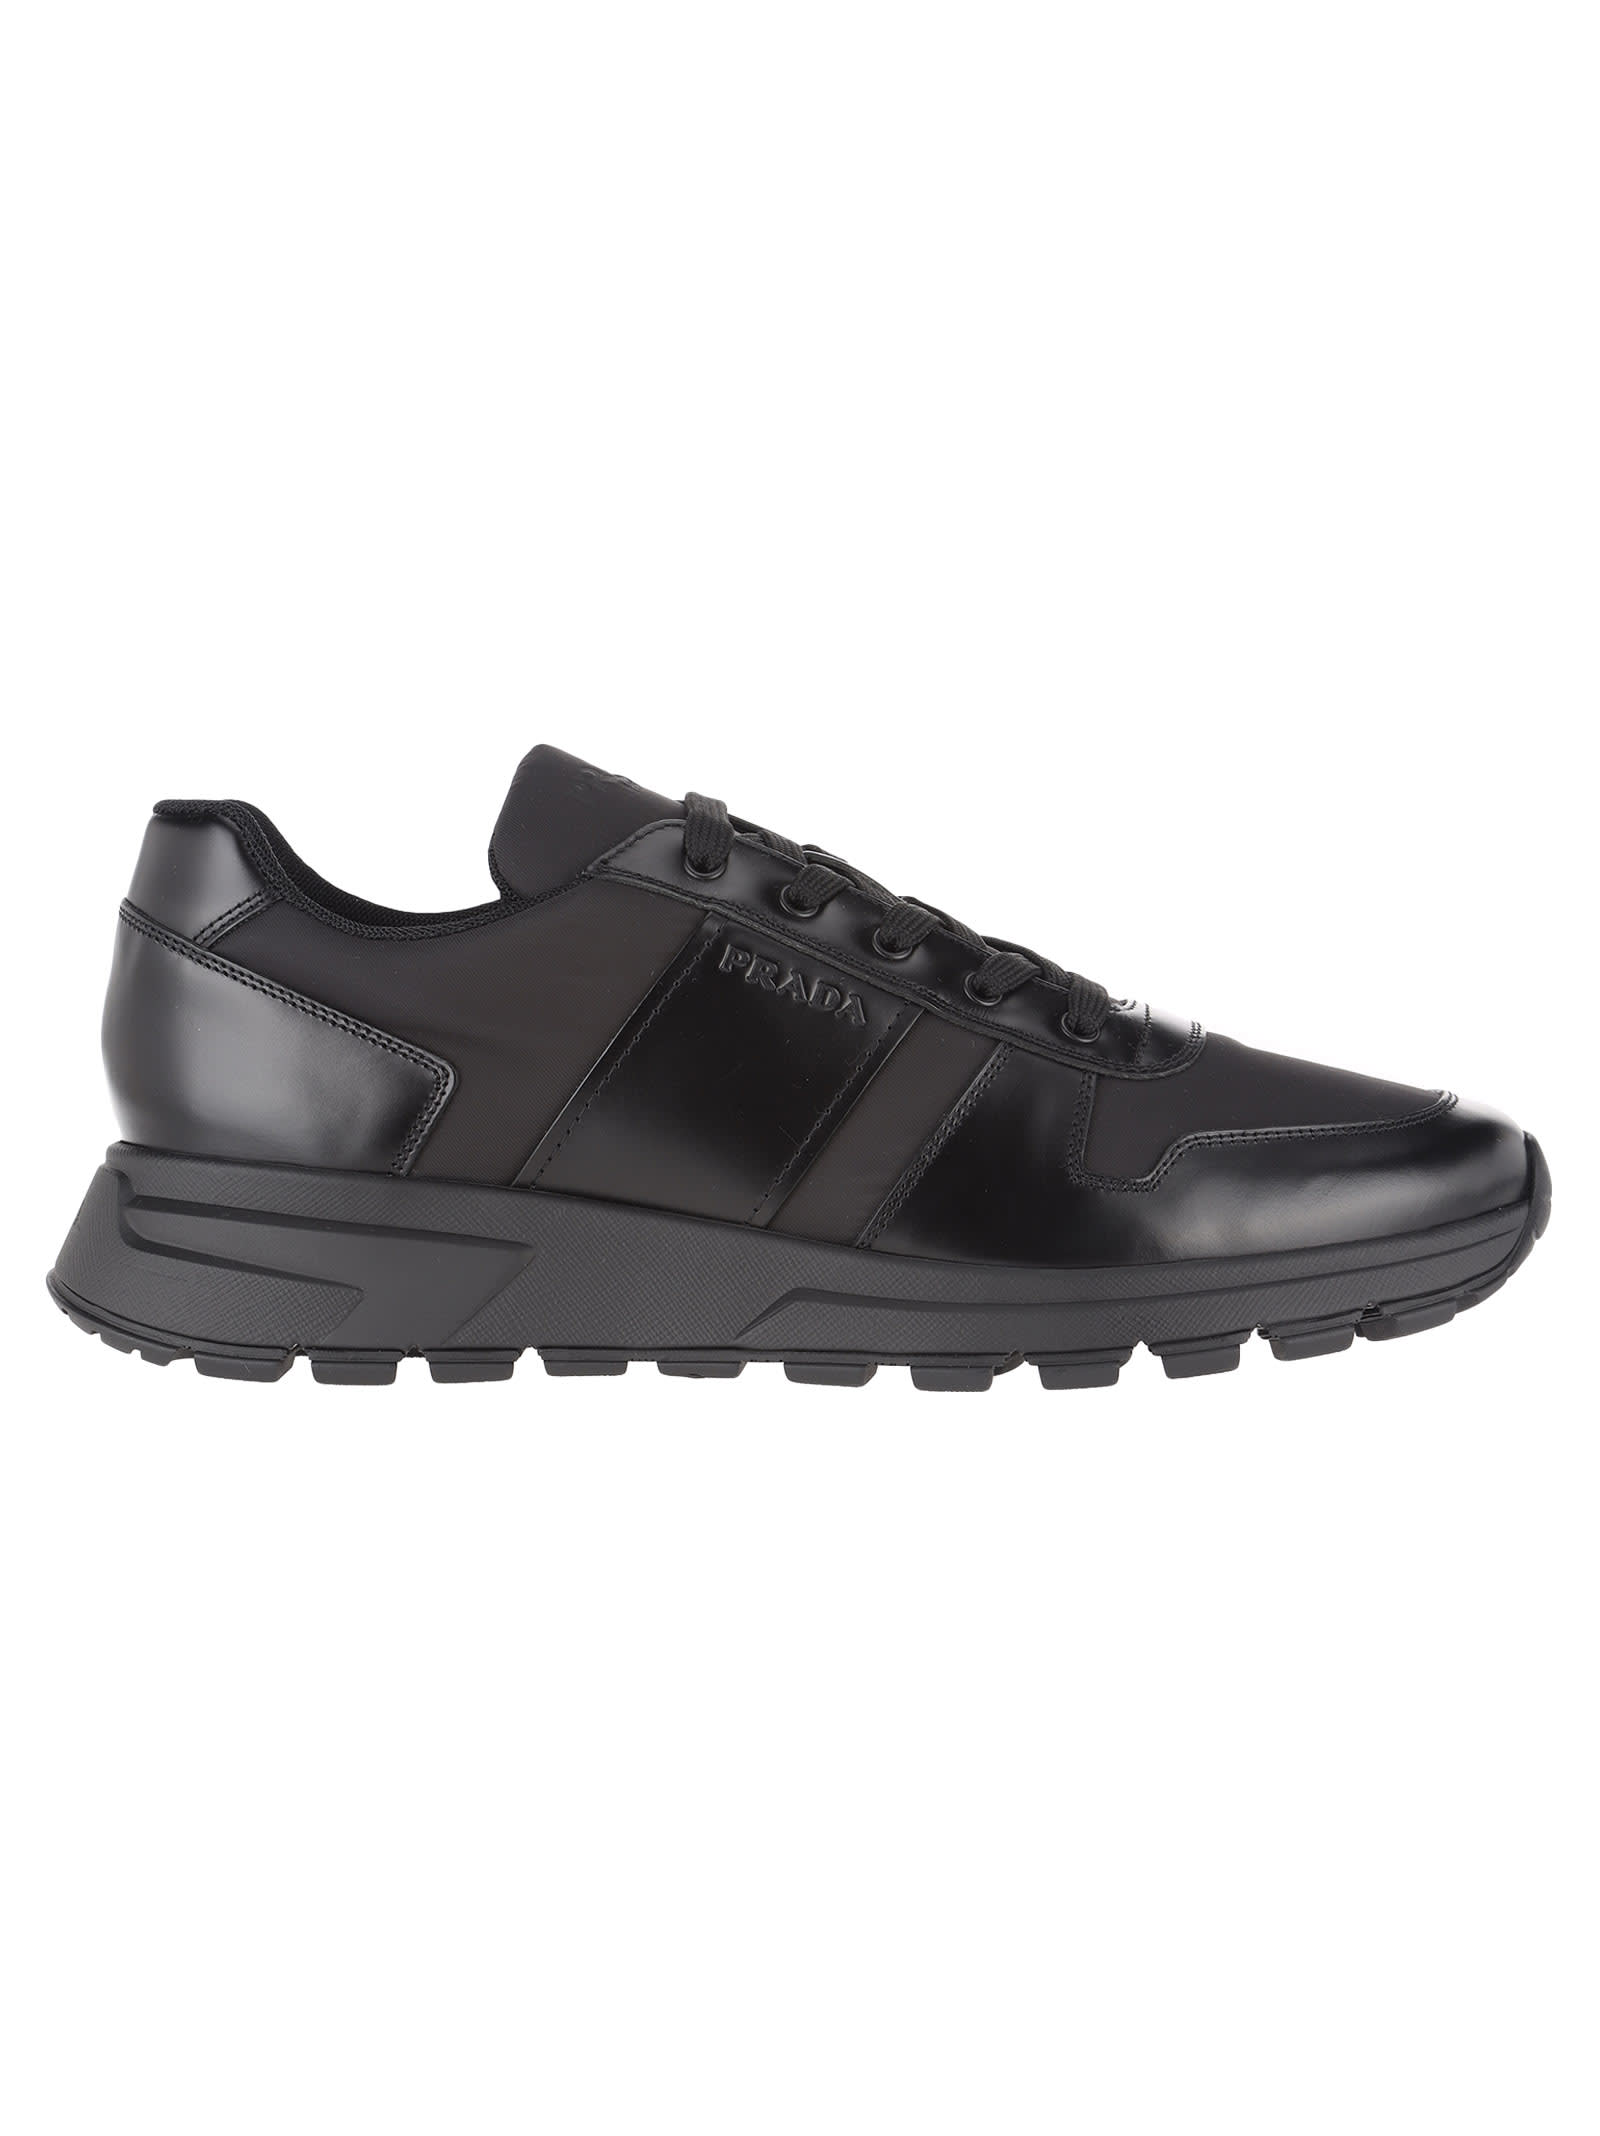 ae7f911664 Prada Fabric And Brushed Leather Sneakers